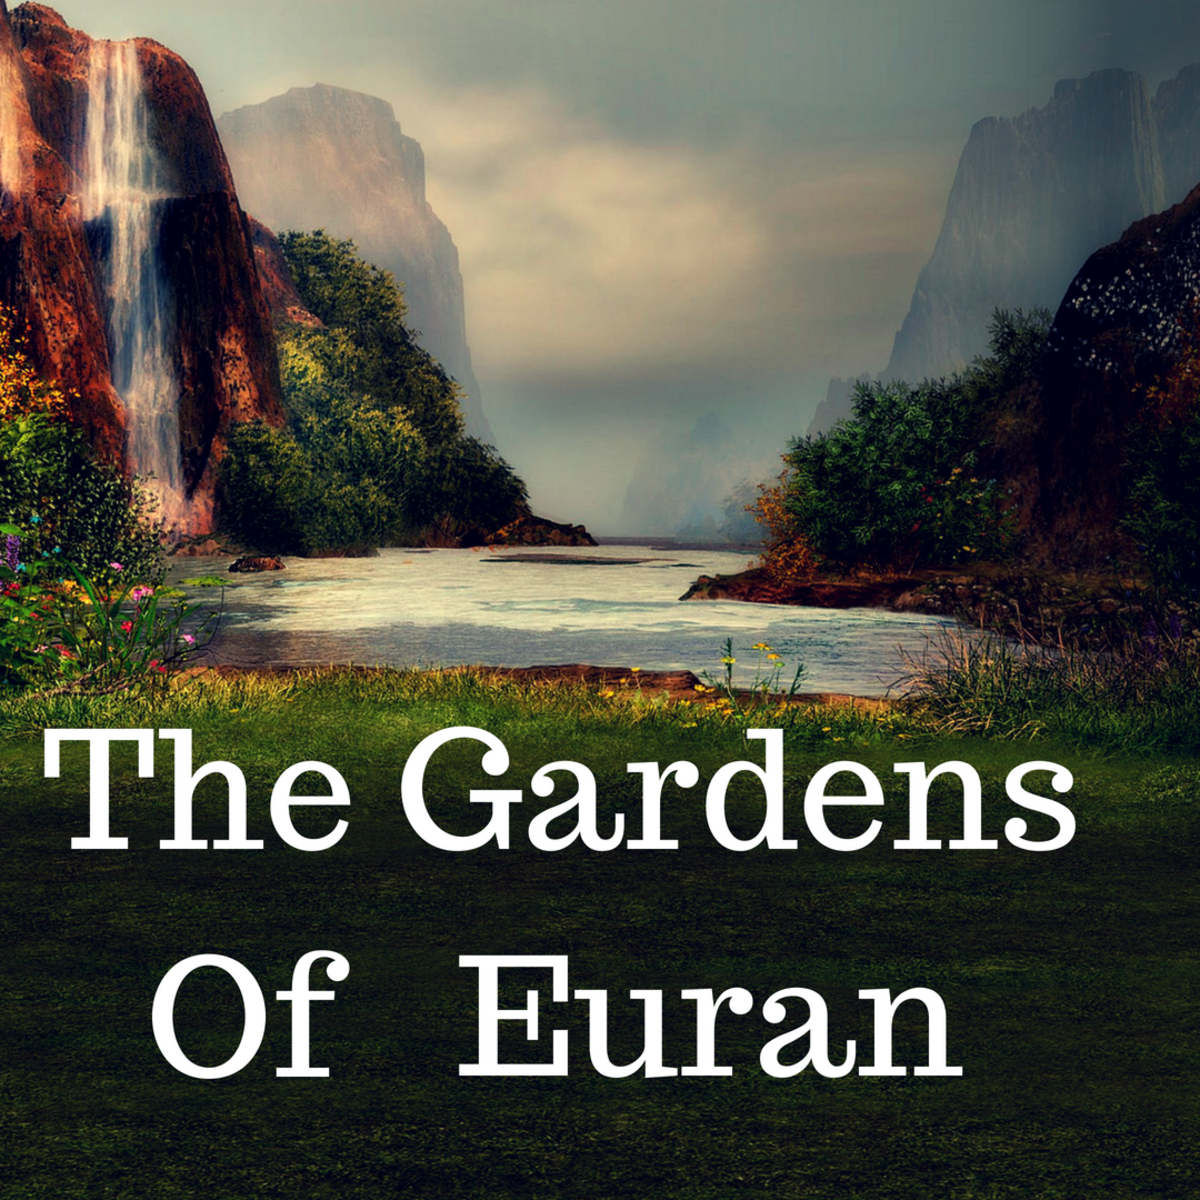 The Gardens of Euran: Chapter 1